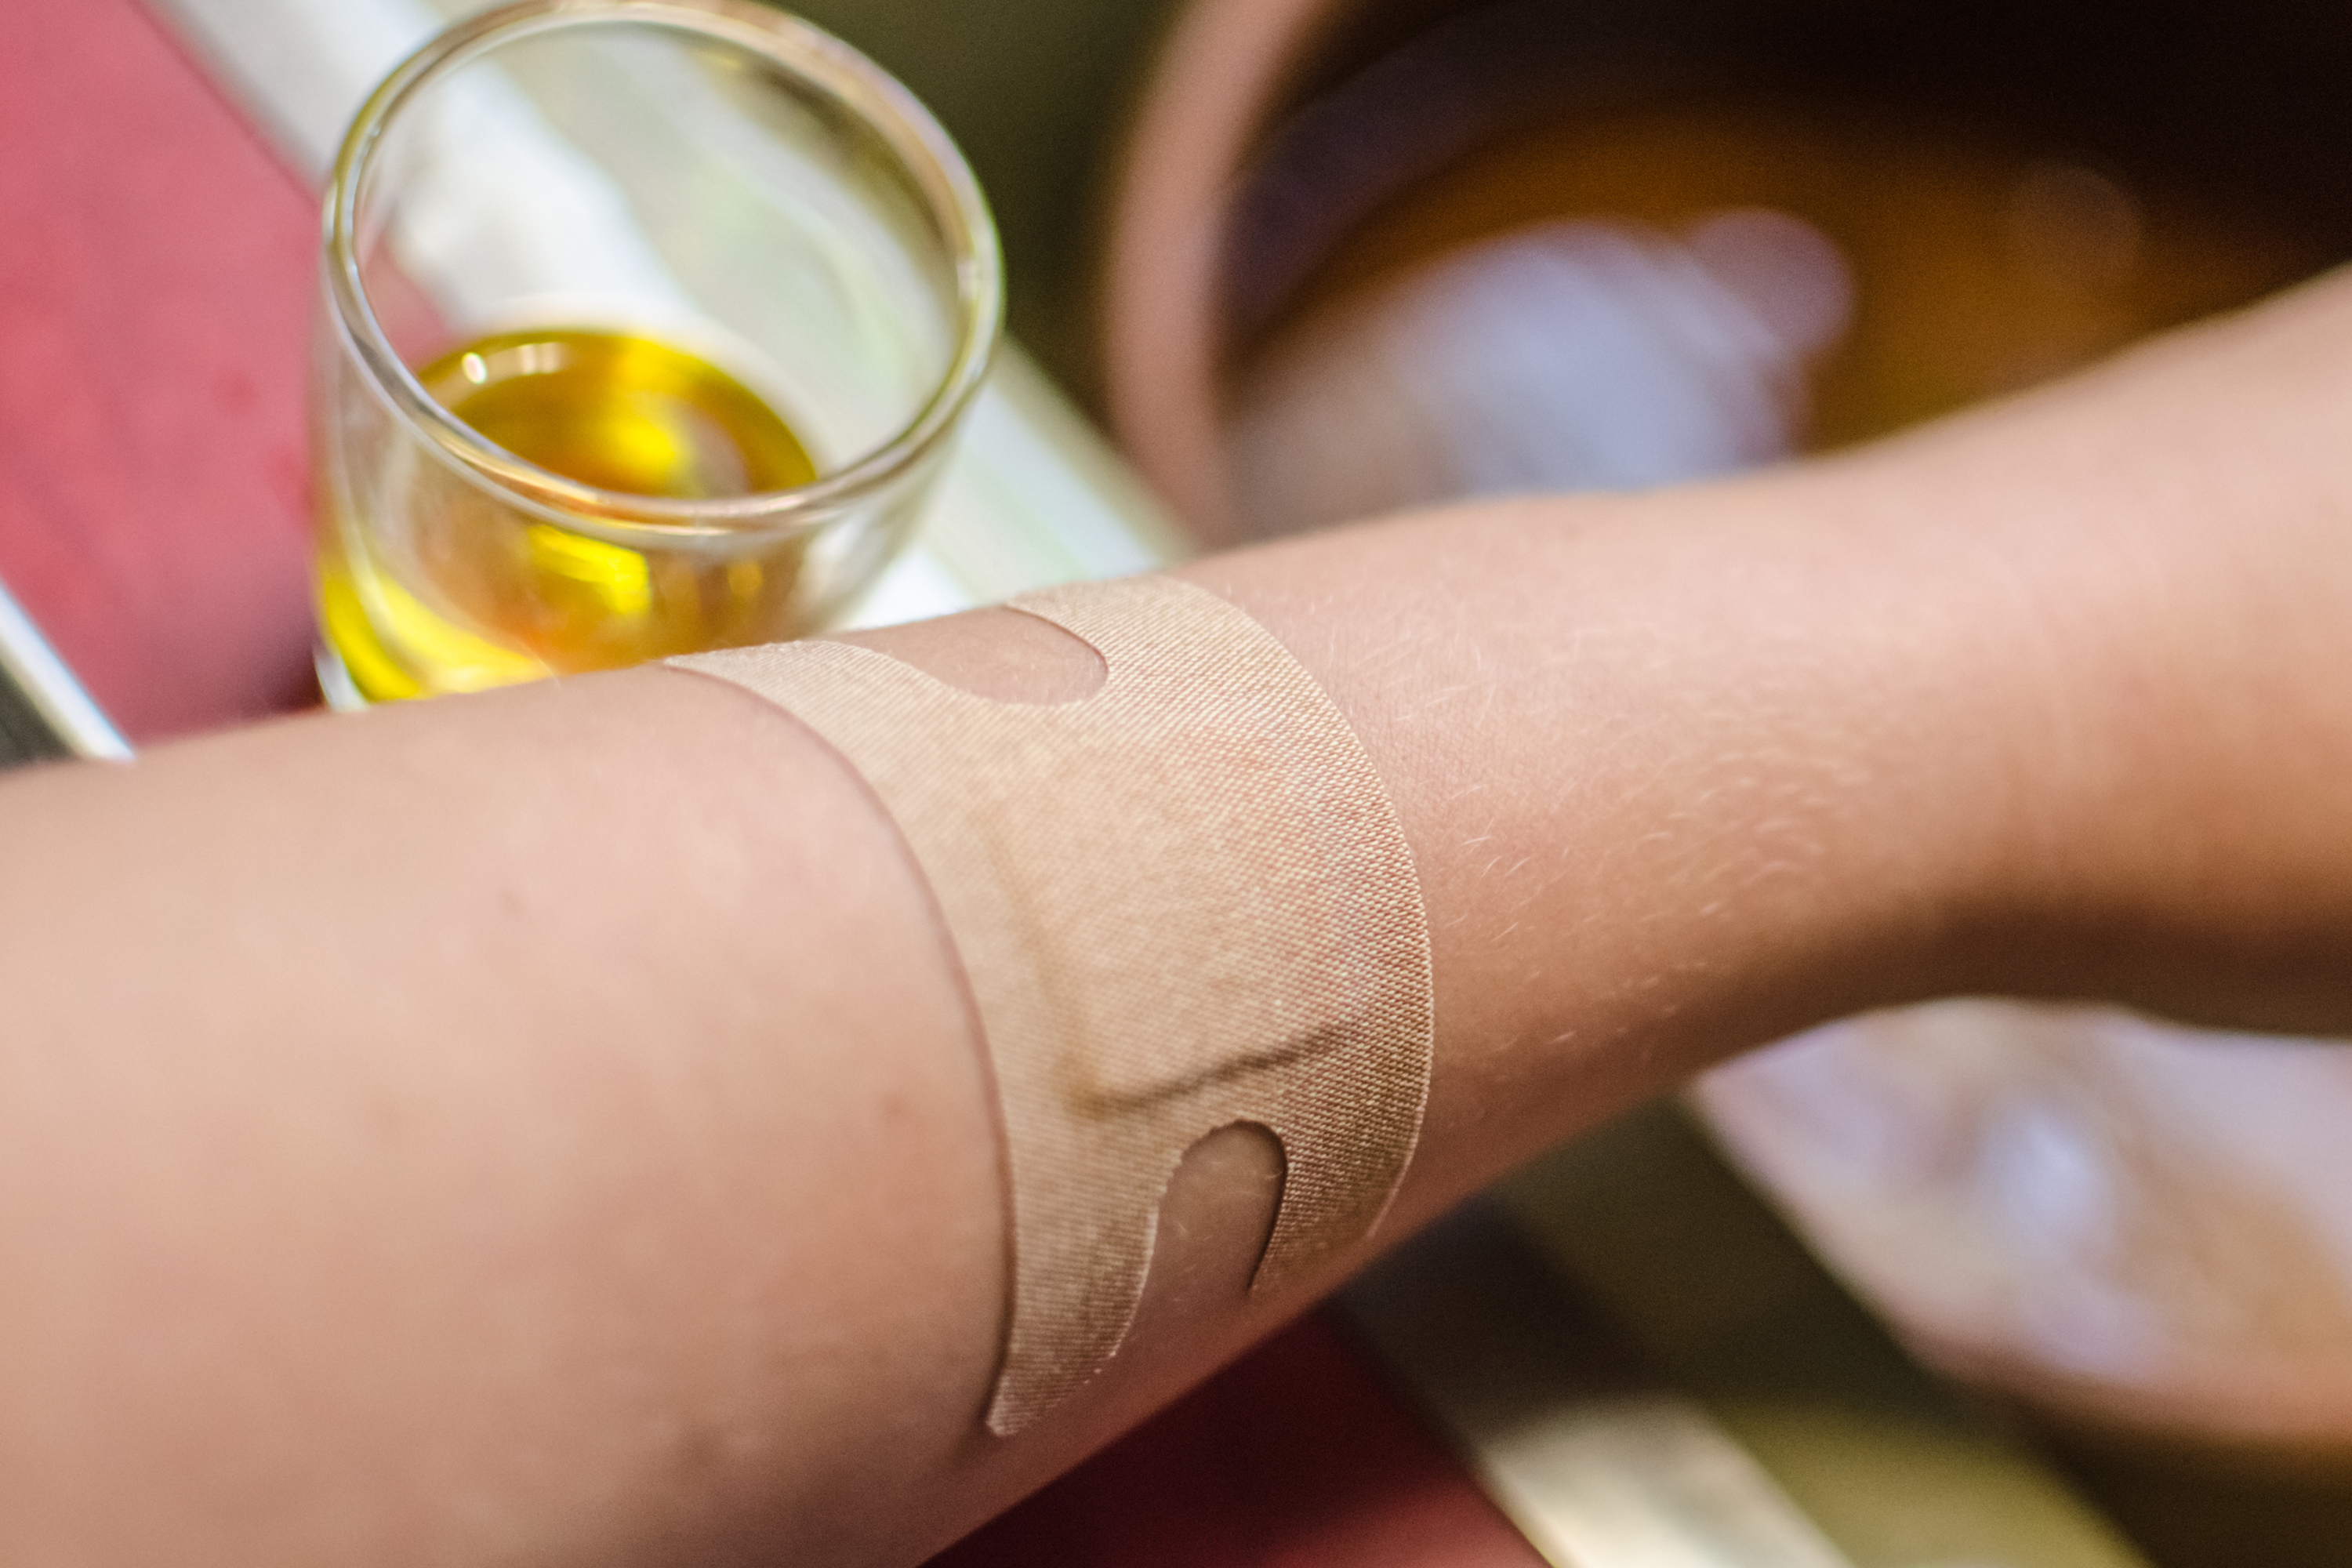 How to Treat Wax Hair Removal Burns